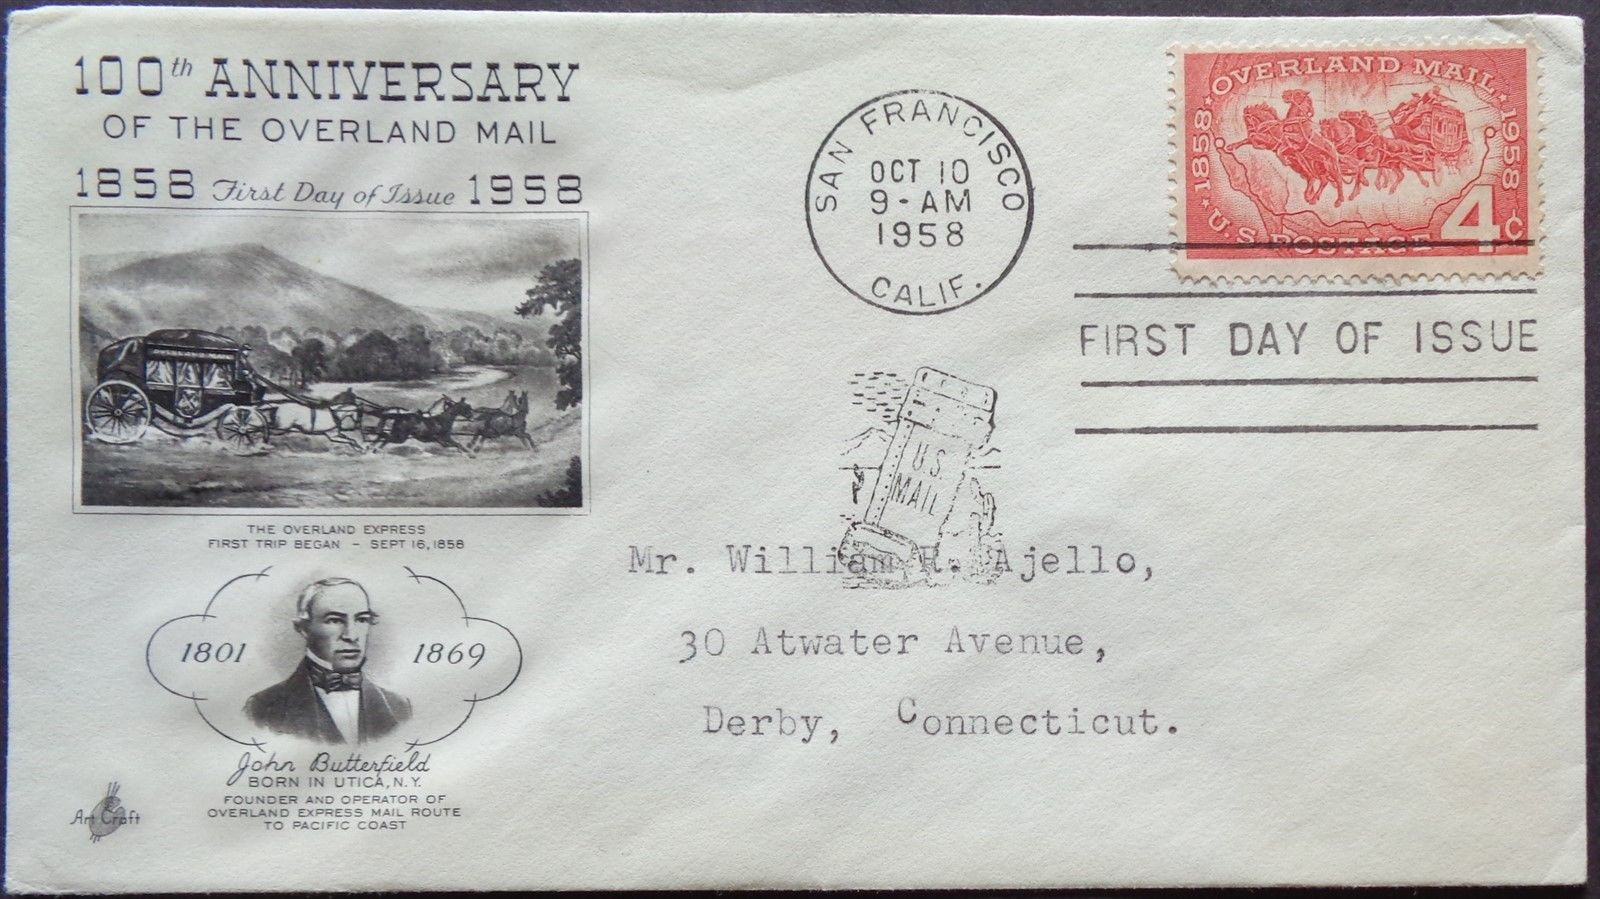 United States - Scott #1120 (1958) first day cover with ArtCraft cachet